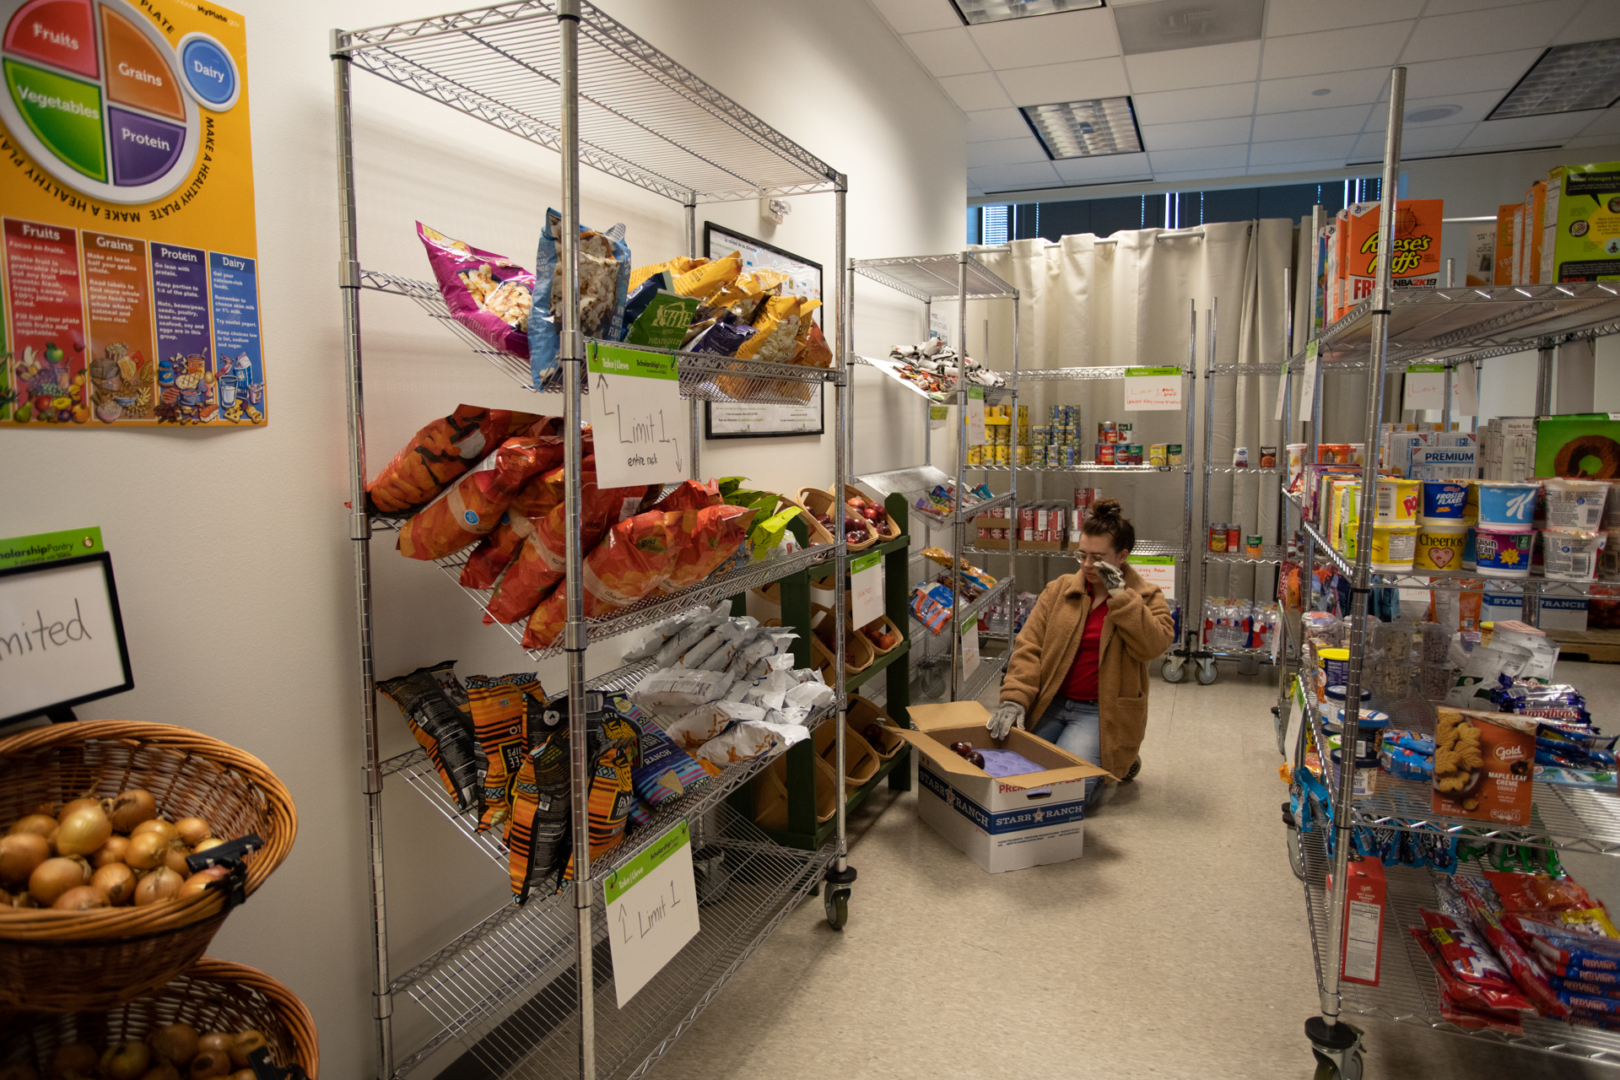 Cougar Cupboard provides perishables and non-perishables to suffice basic nutrition such as fruits, vegetables, dairy, meats, and even essential toiletry items. Students are allowed to take home up to eight pounds of fruits and vegetables, seven pounds of protein, and seven pounds of dry goods a week.